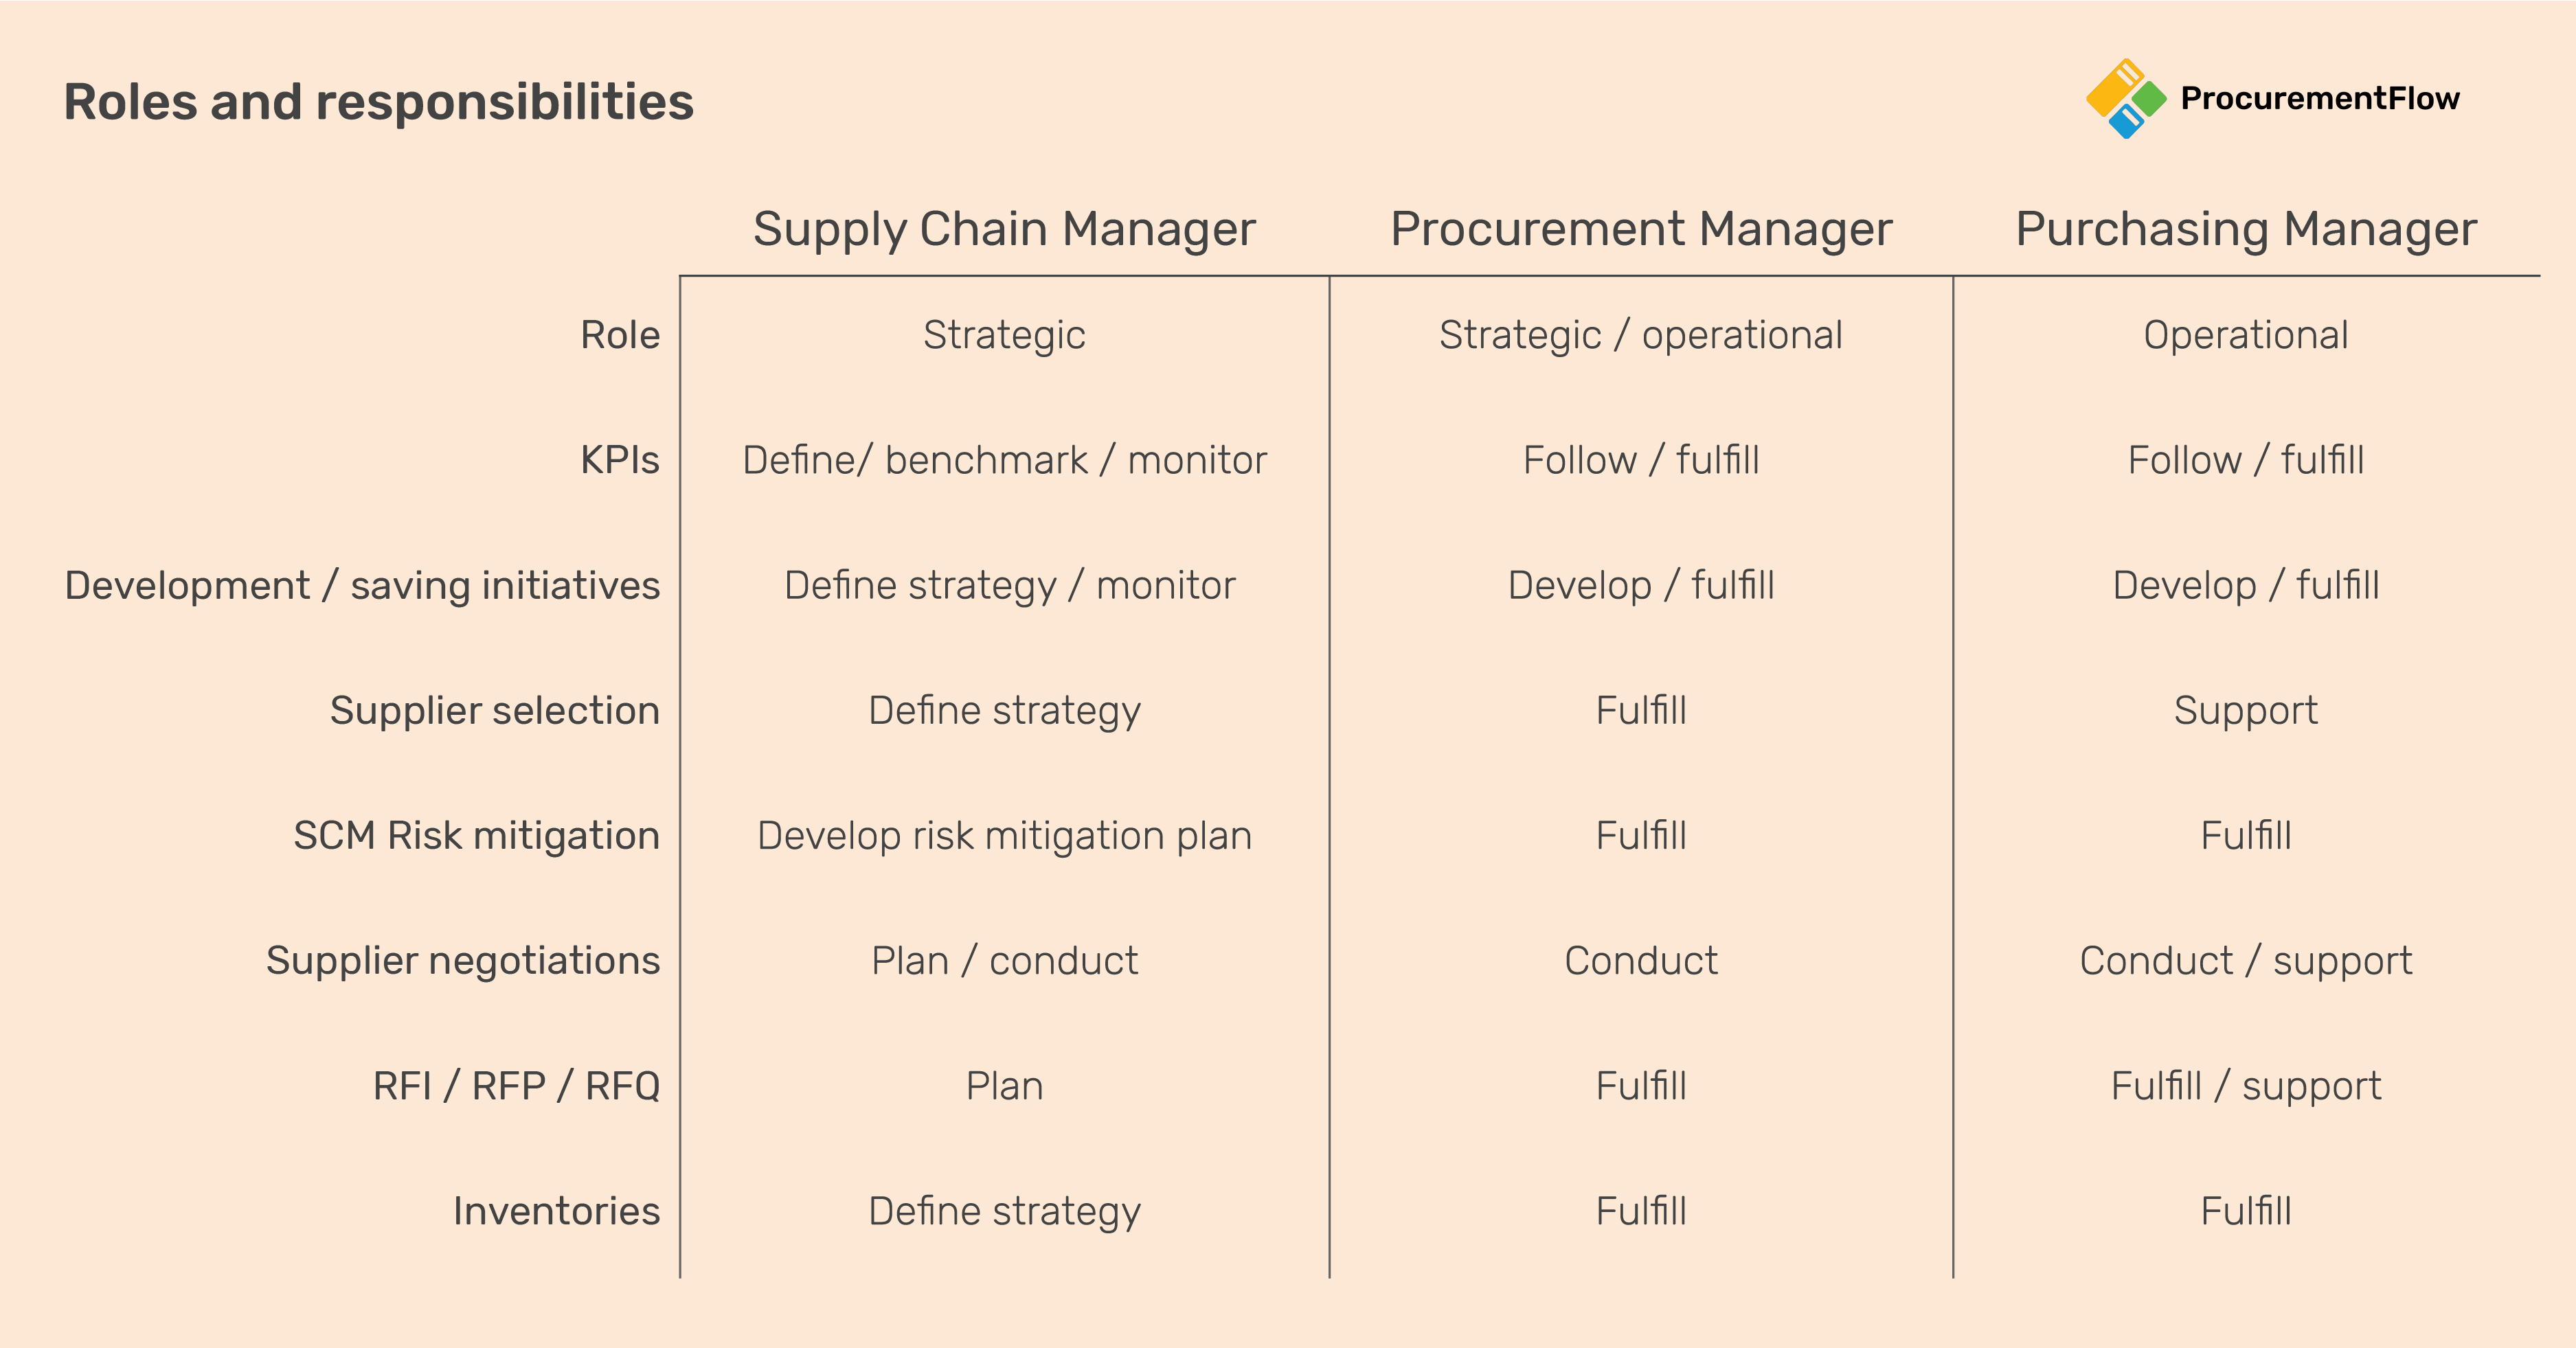 Supply chain roles and responsibilities